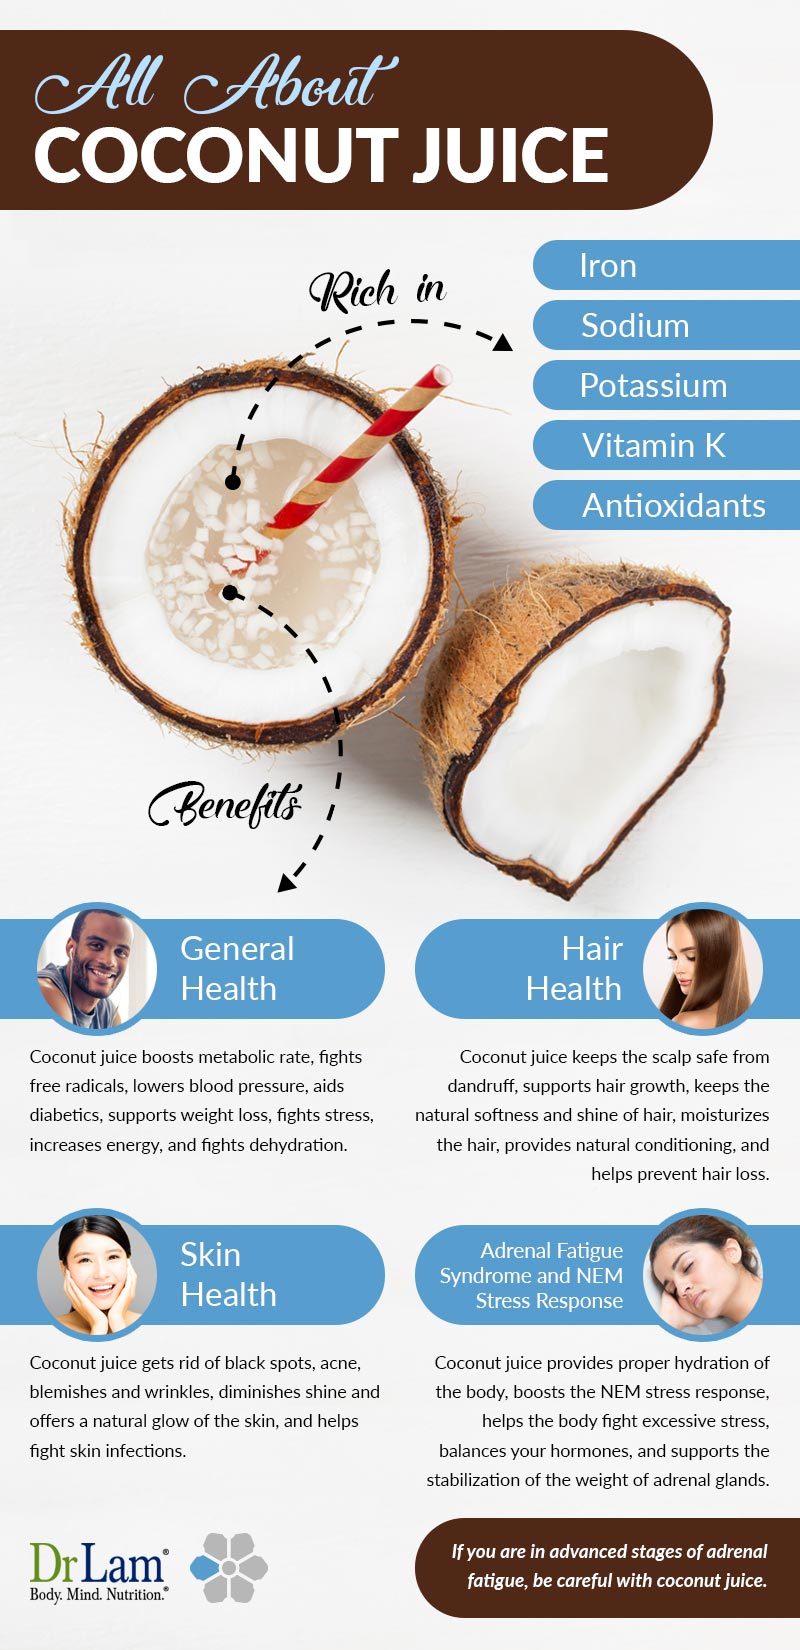 Check out this easy to understand infographic about coconut juice benefits